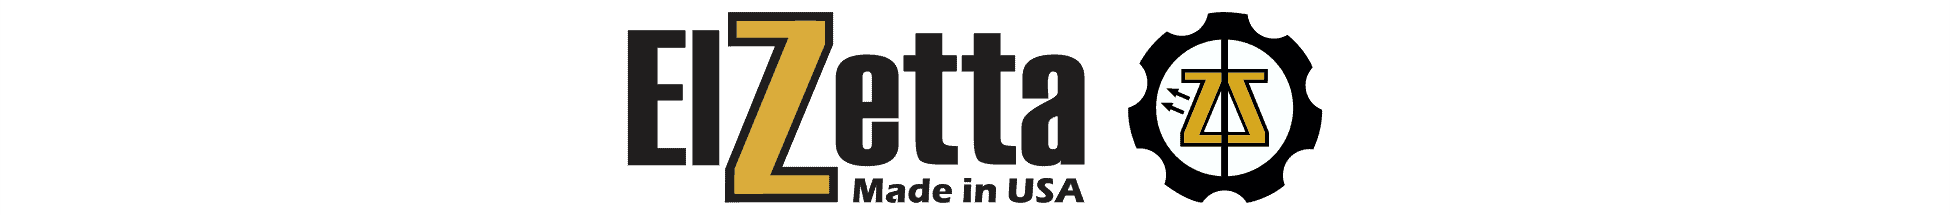 Elzetta Tactical Lighting Logo